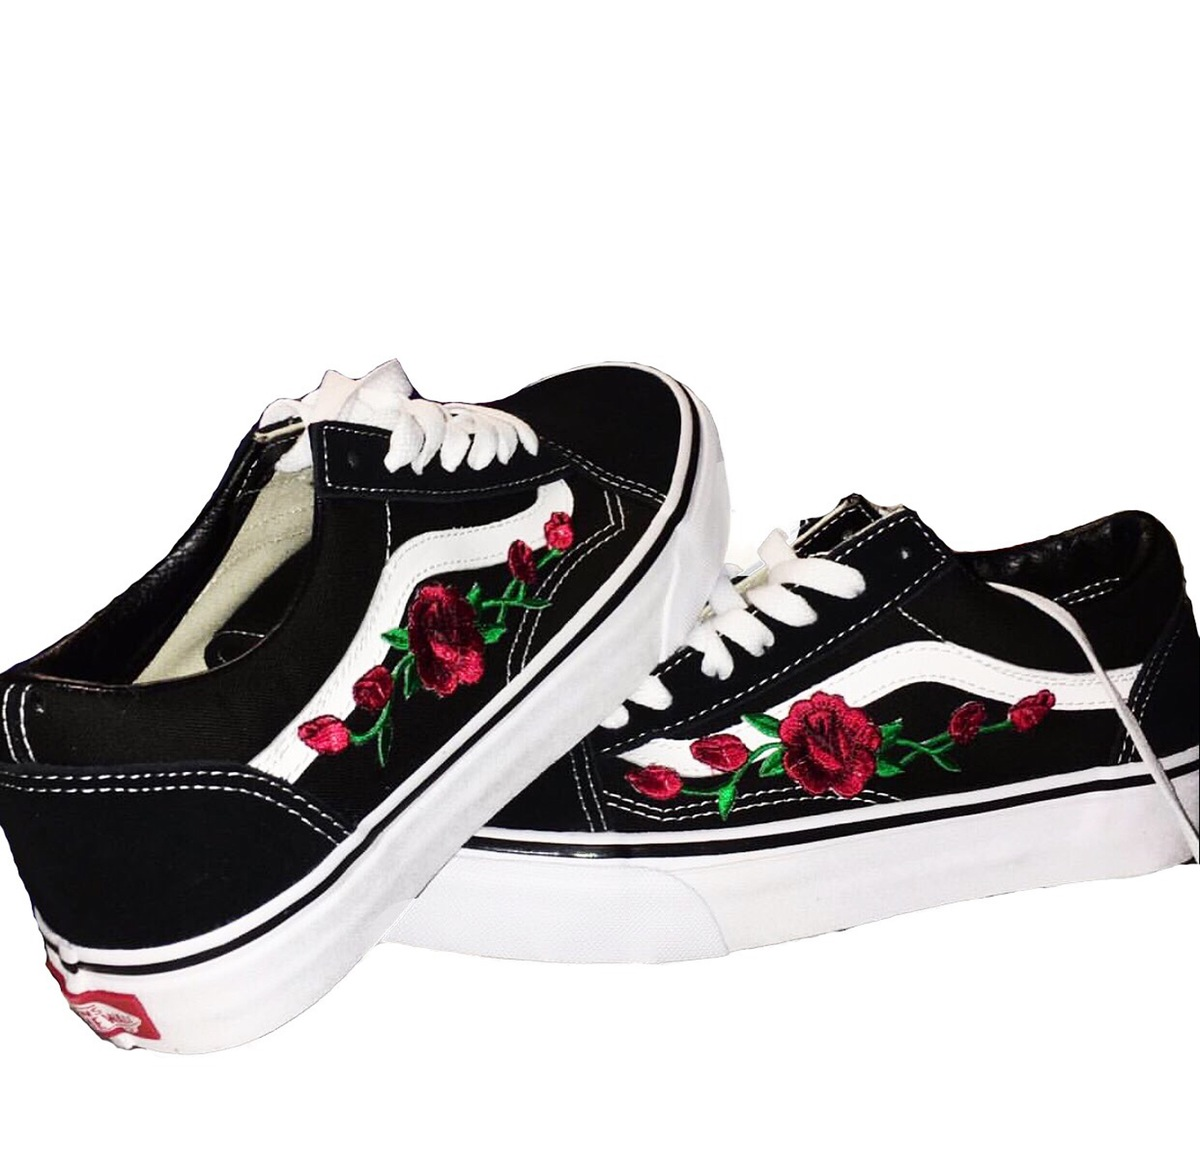 OLD SKOOL VANS ROSES